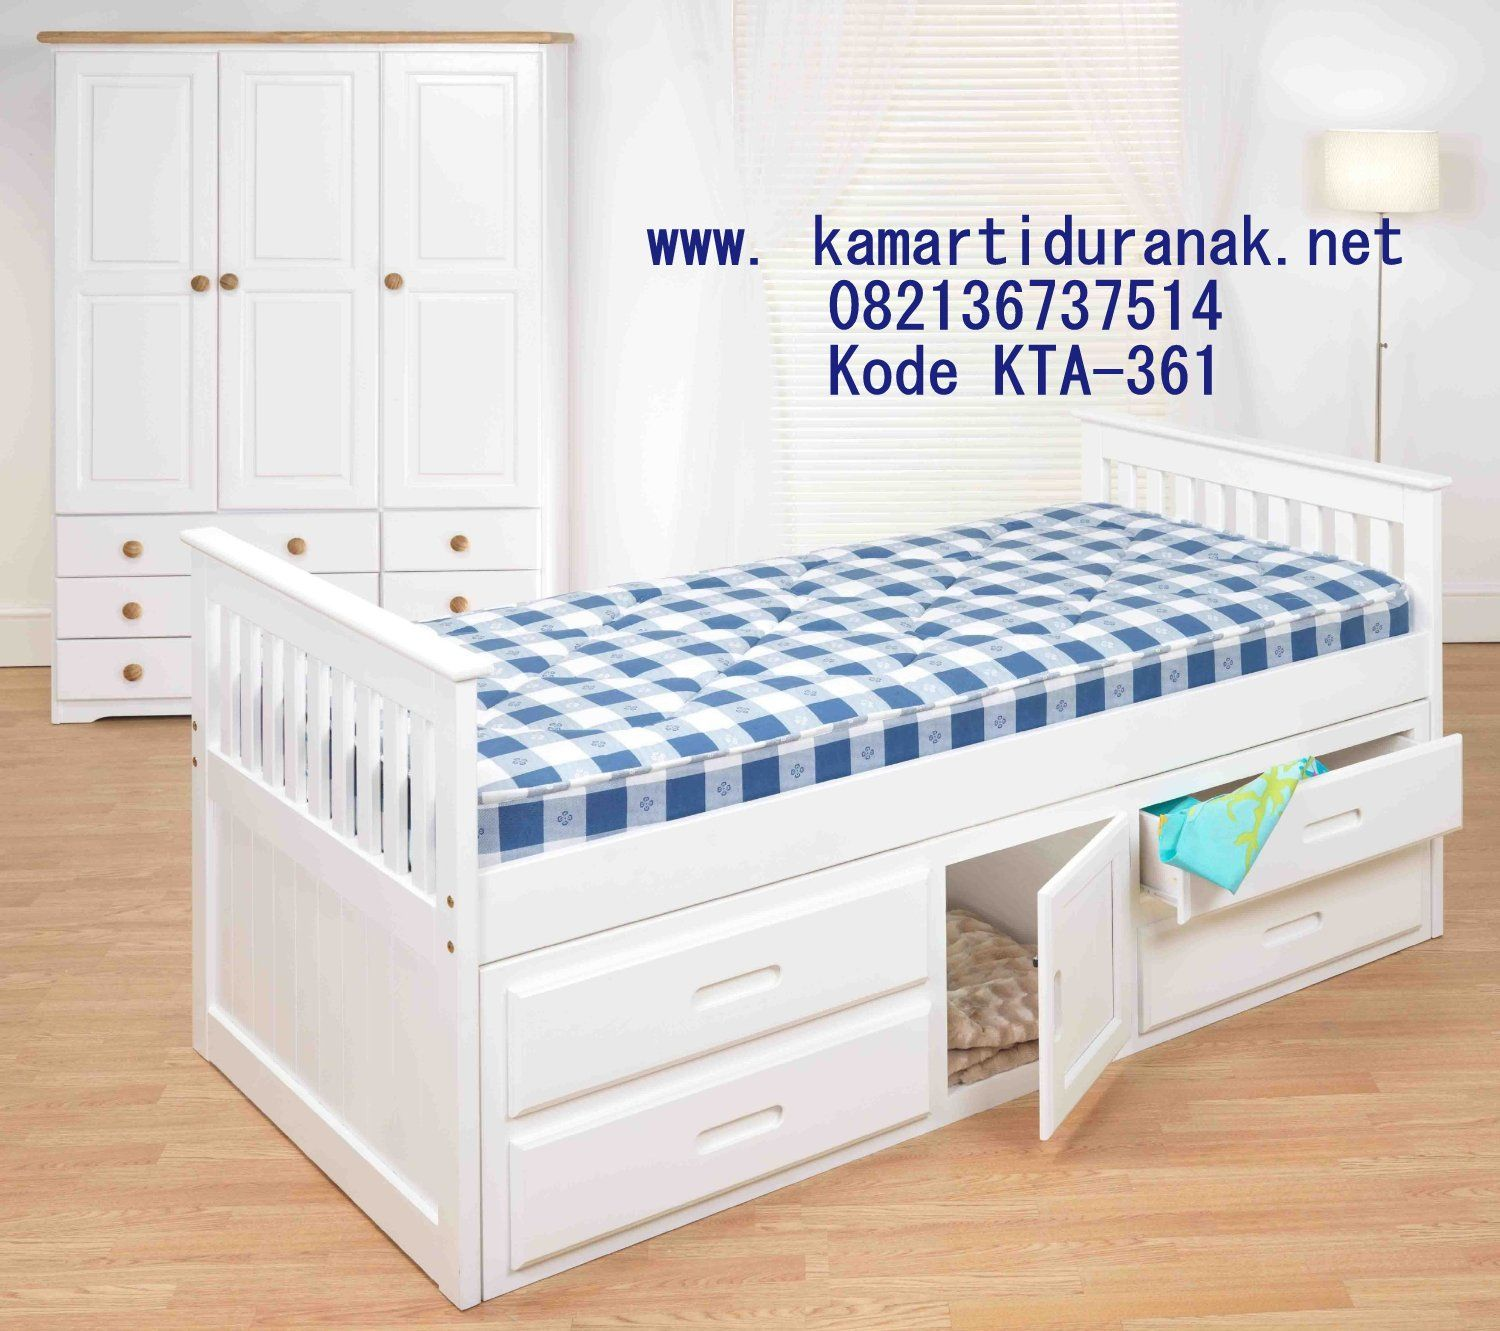 Low Single Bed Frame With Storage